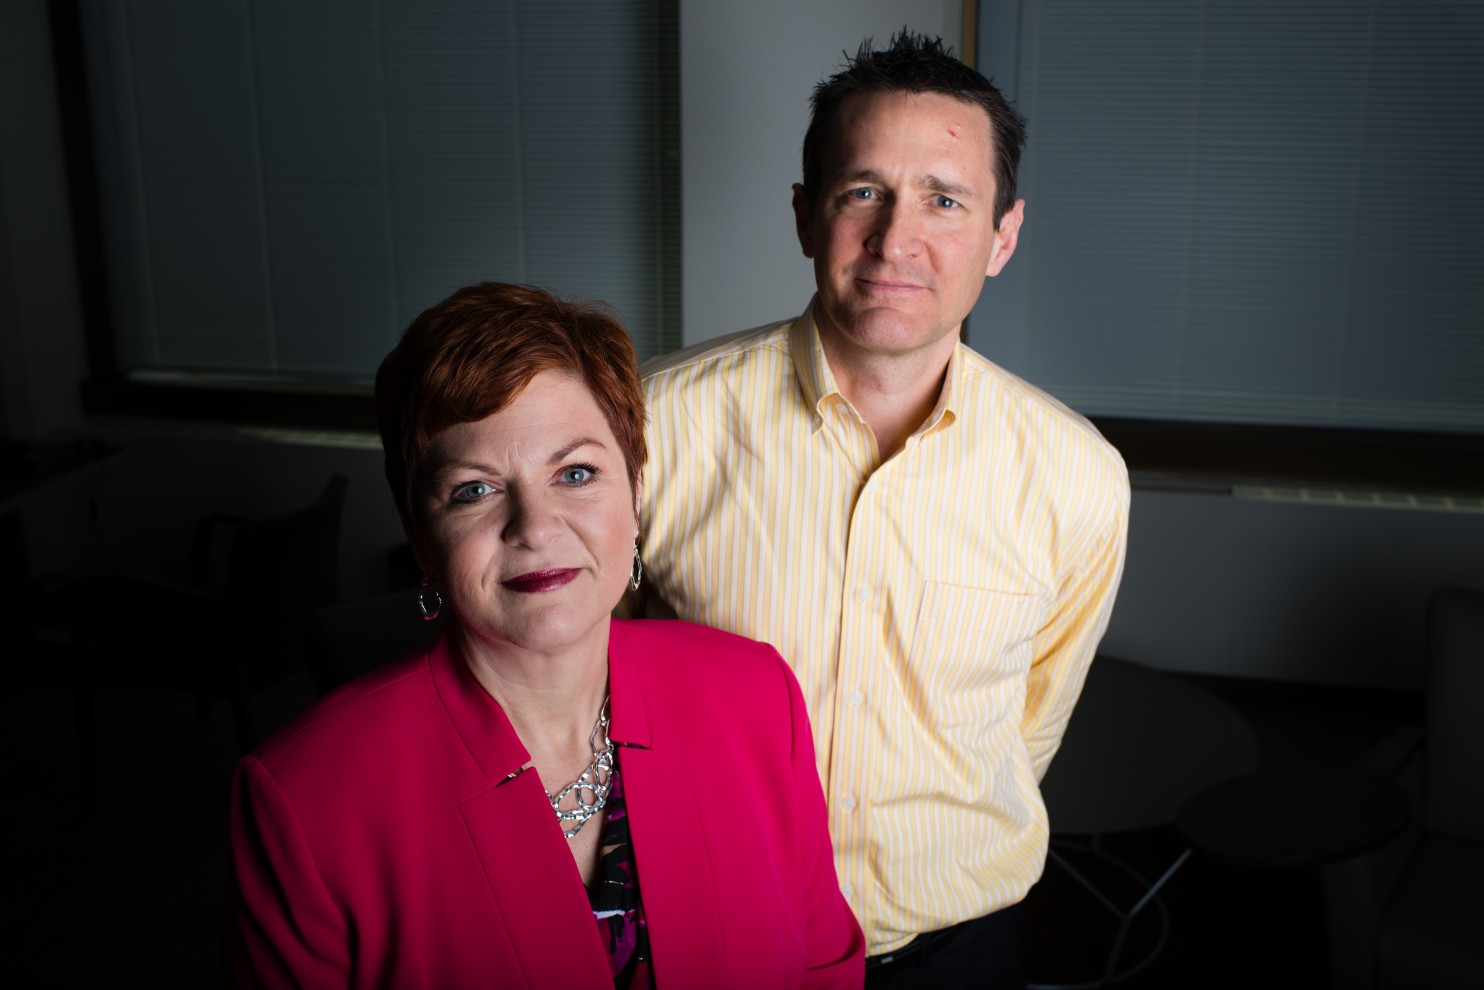 FemHealth aka Carafem - Melissa Grant, VP of health services; Christopher Purdy, president and CEO